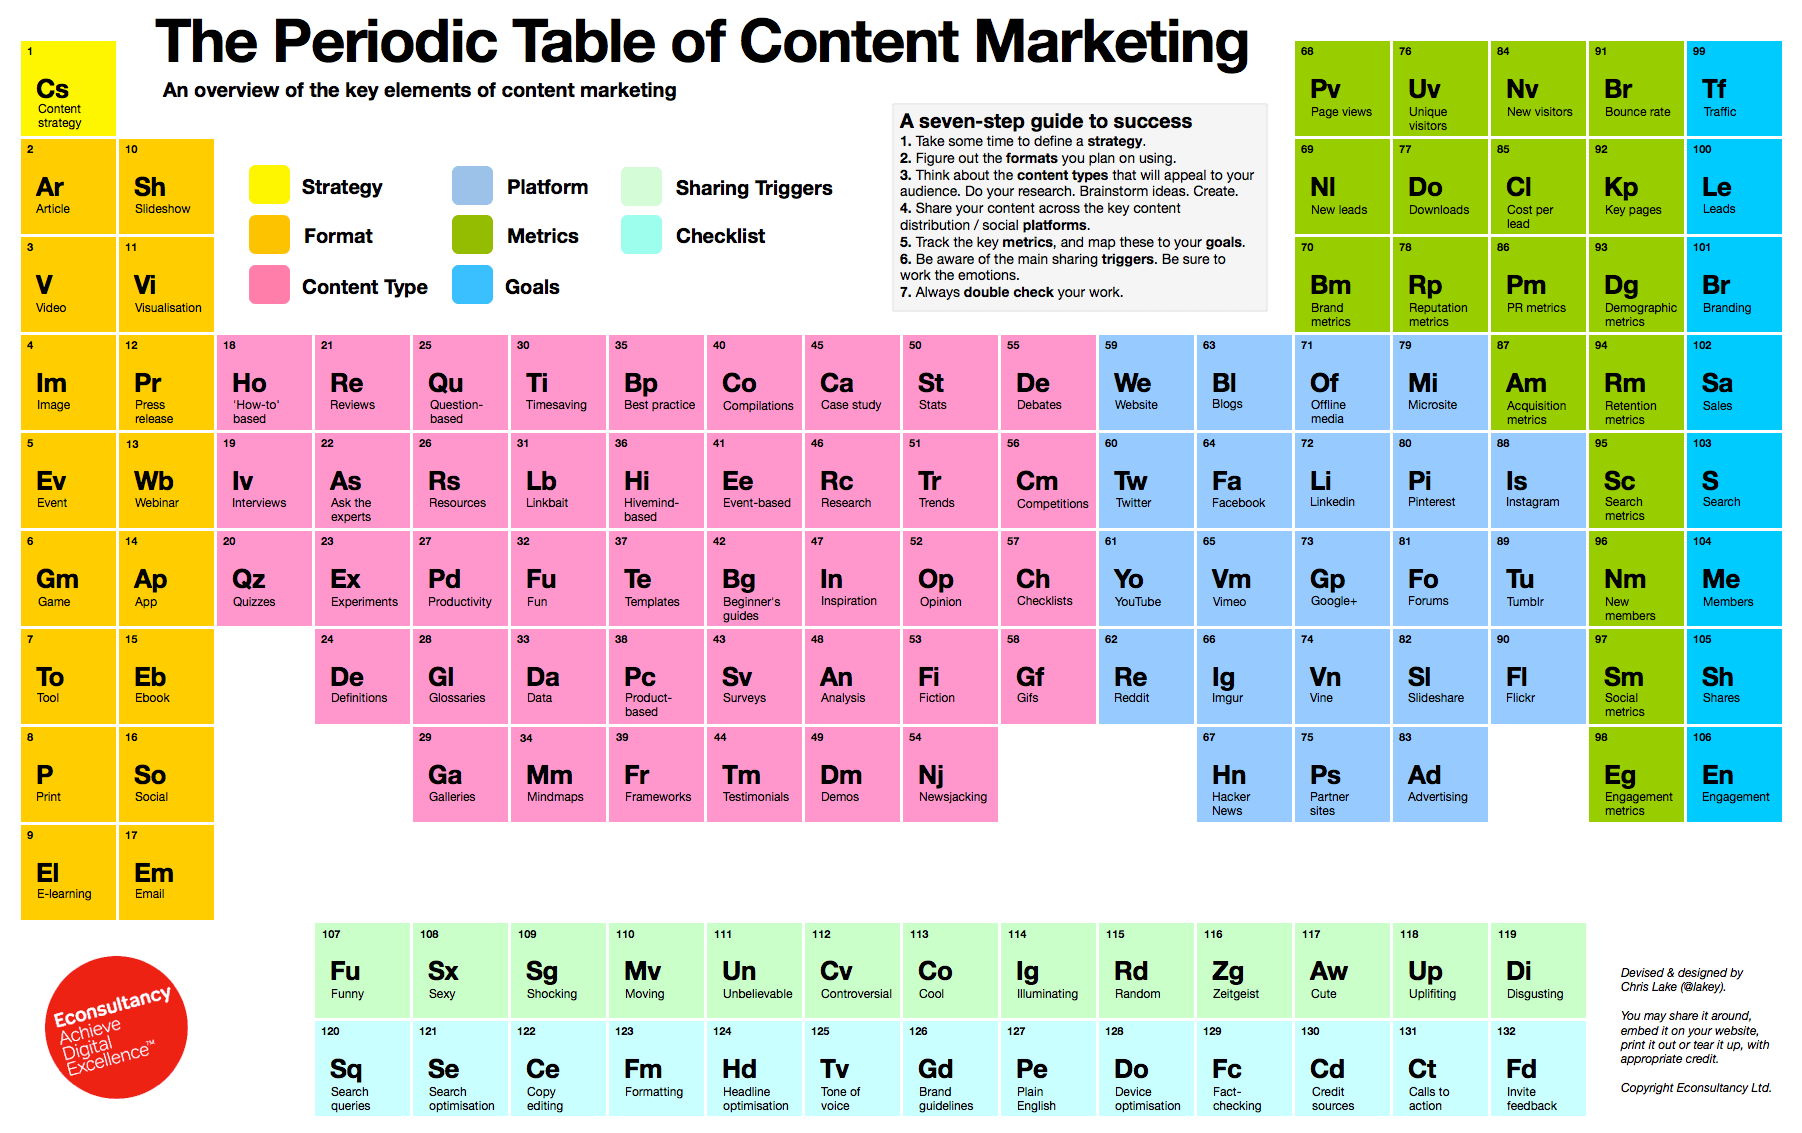 La tavola periodica del content marketing (Econsultancy)